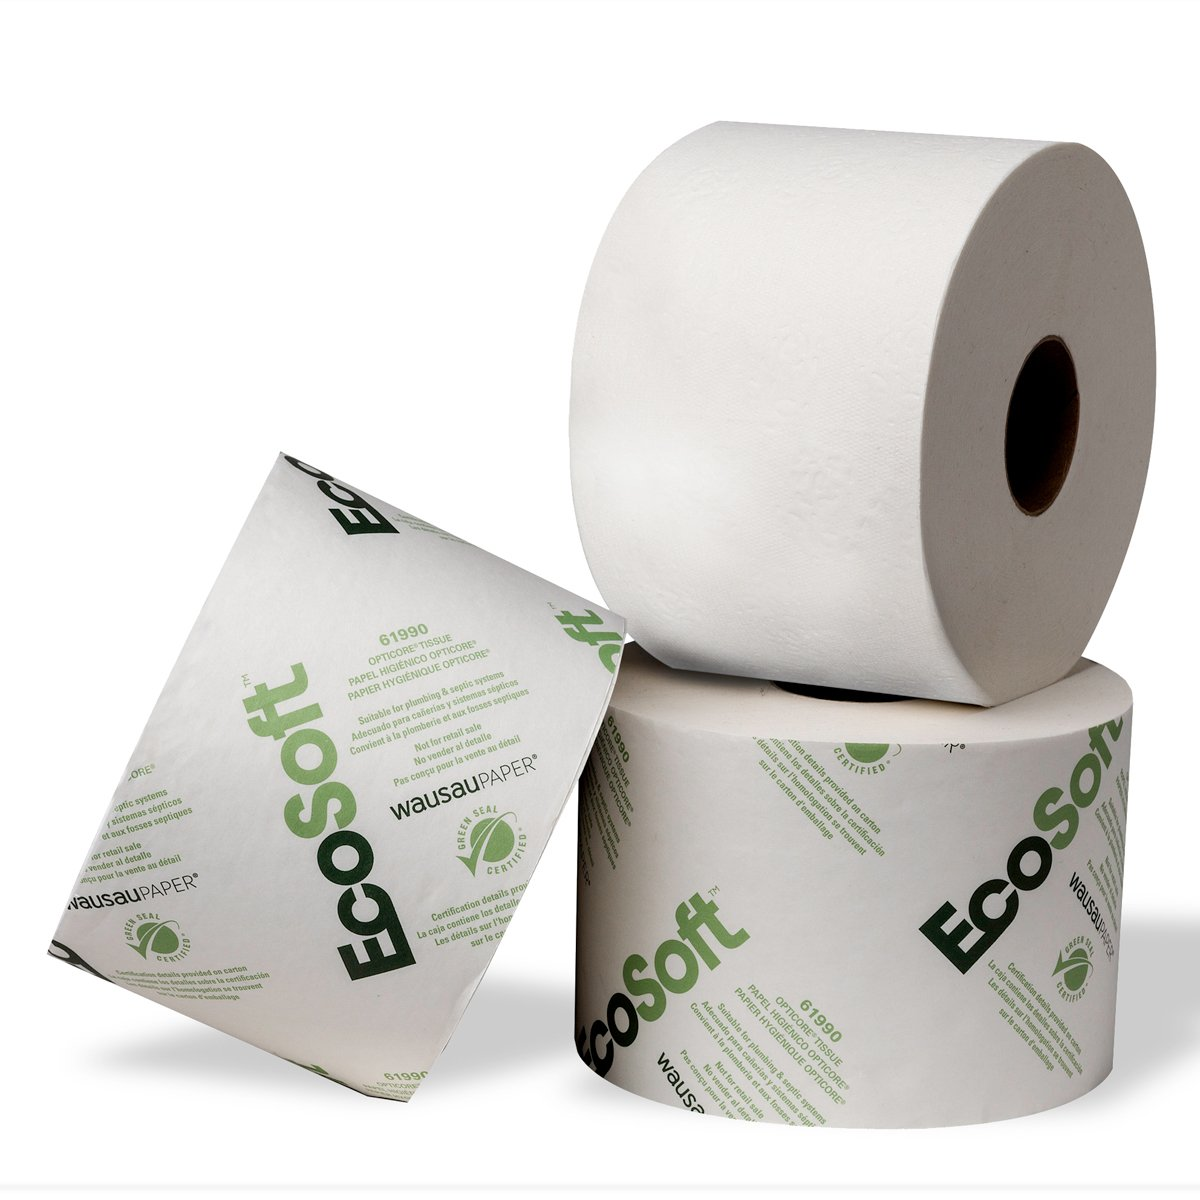 EcoSoft 1 Ply Toilet Roll 1250 Sheets 143m - Pack of 36 Bay West